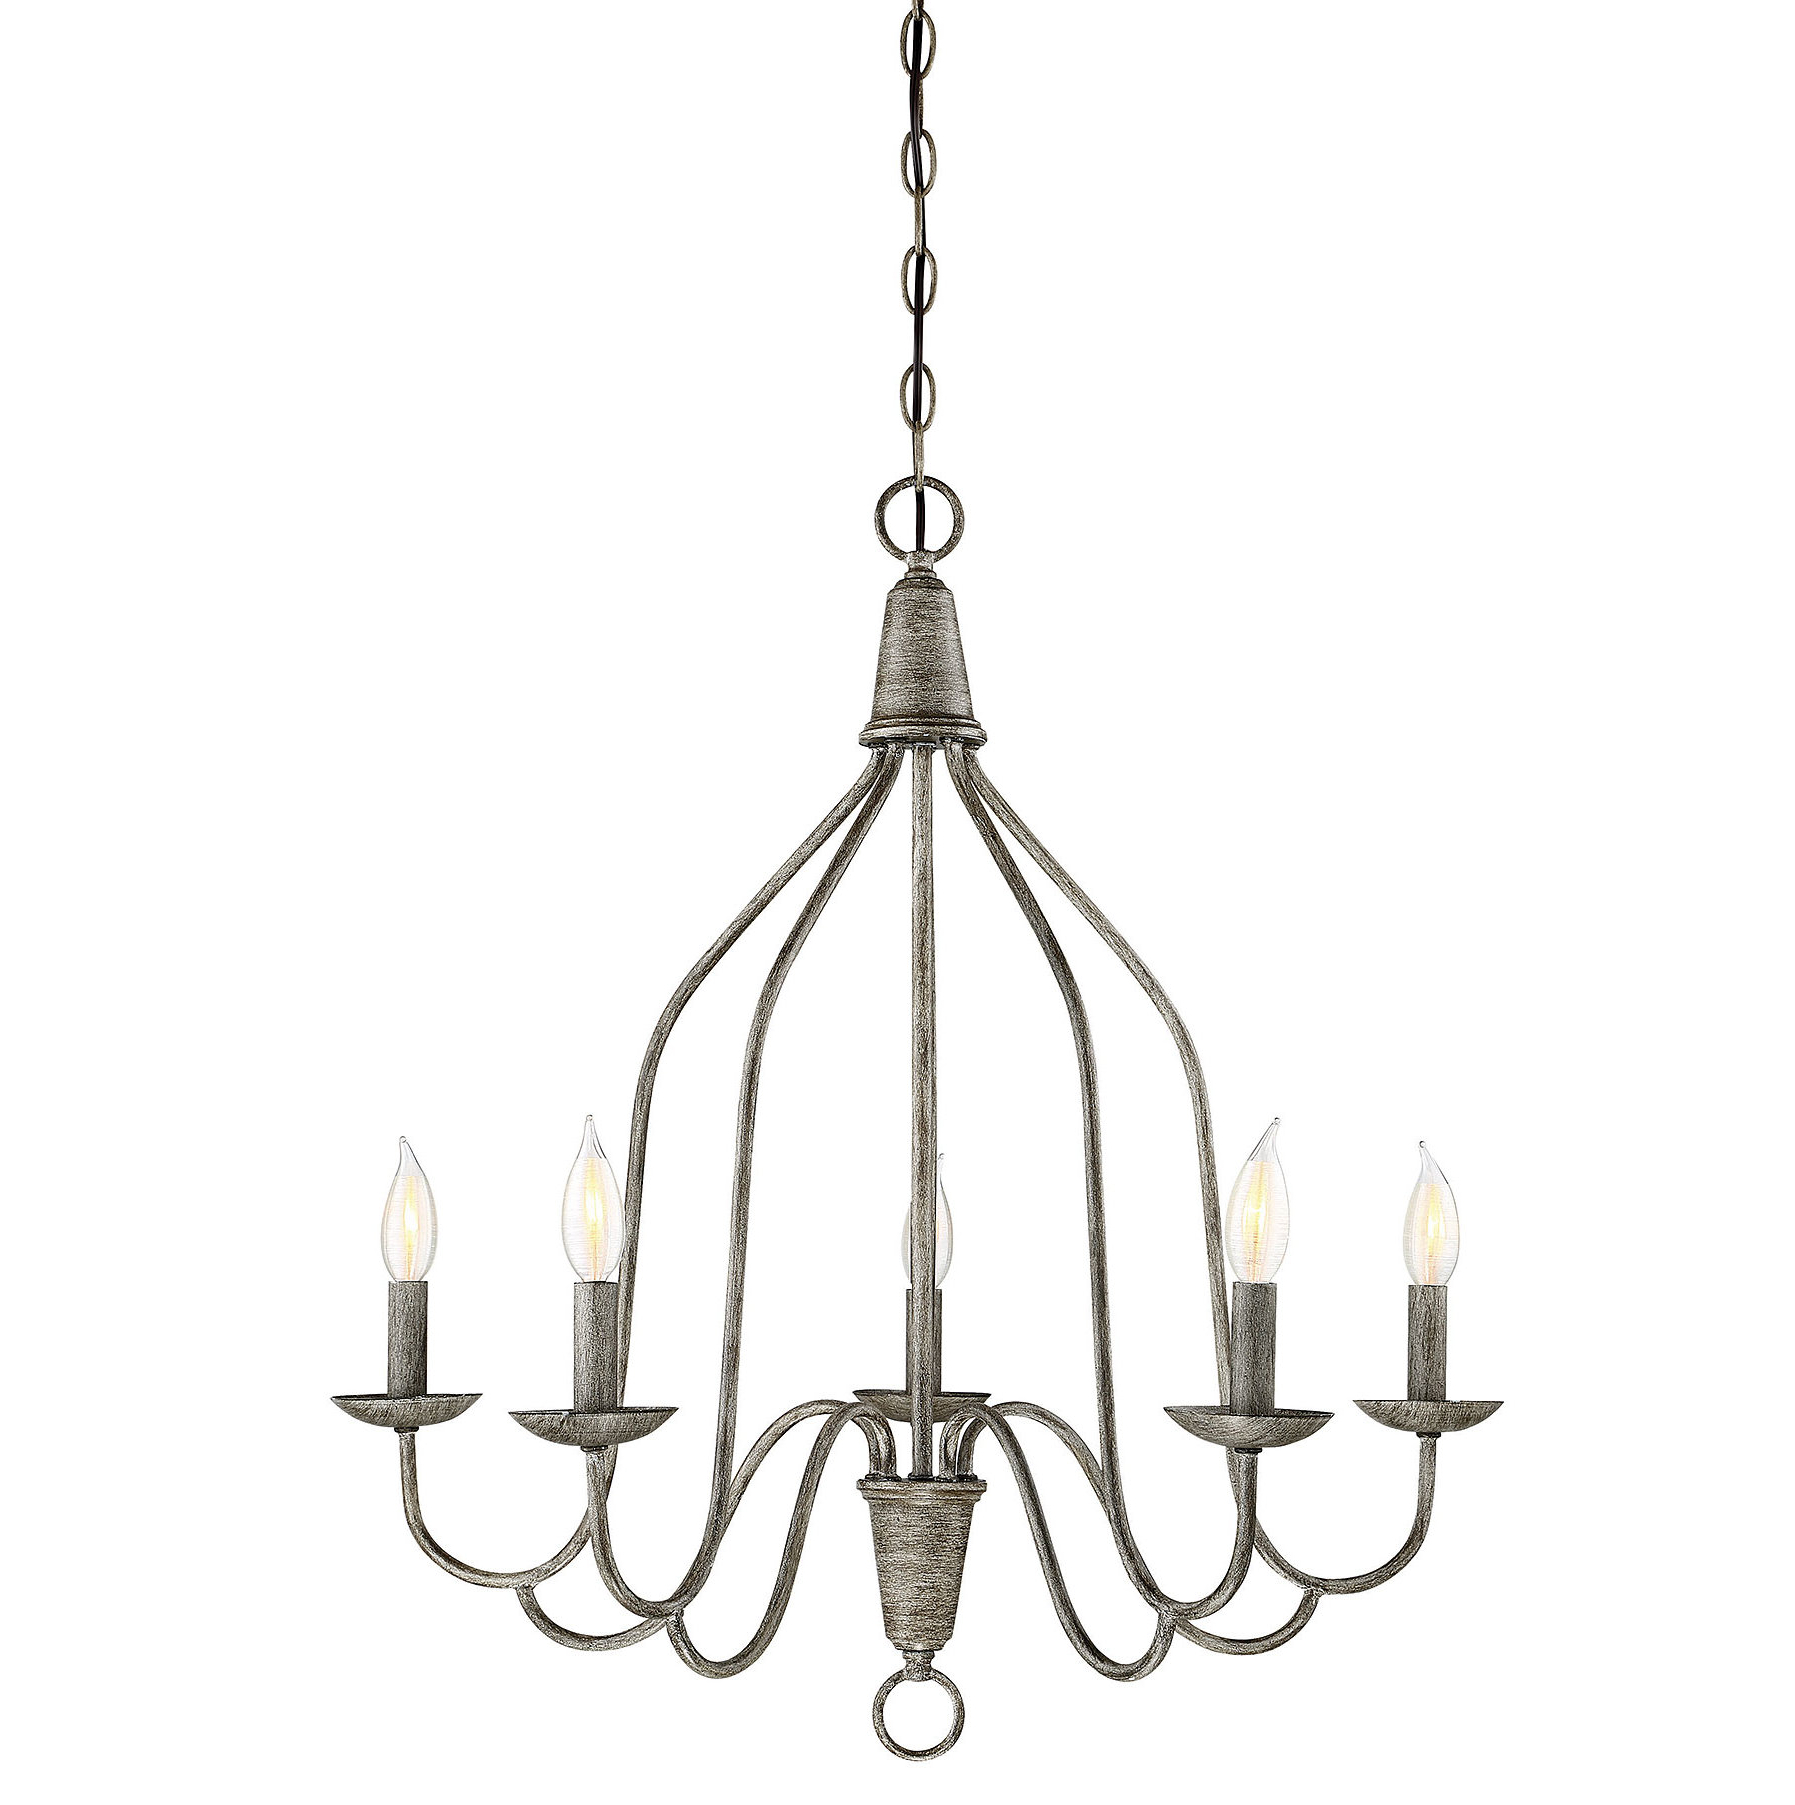 Florentina 5 Light Candle Style Chandeliers Inside Well Known Geeta 5 Light Candle Style Chandelier (View 5 of 20)